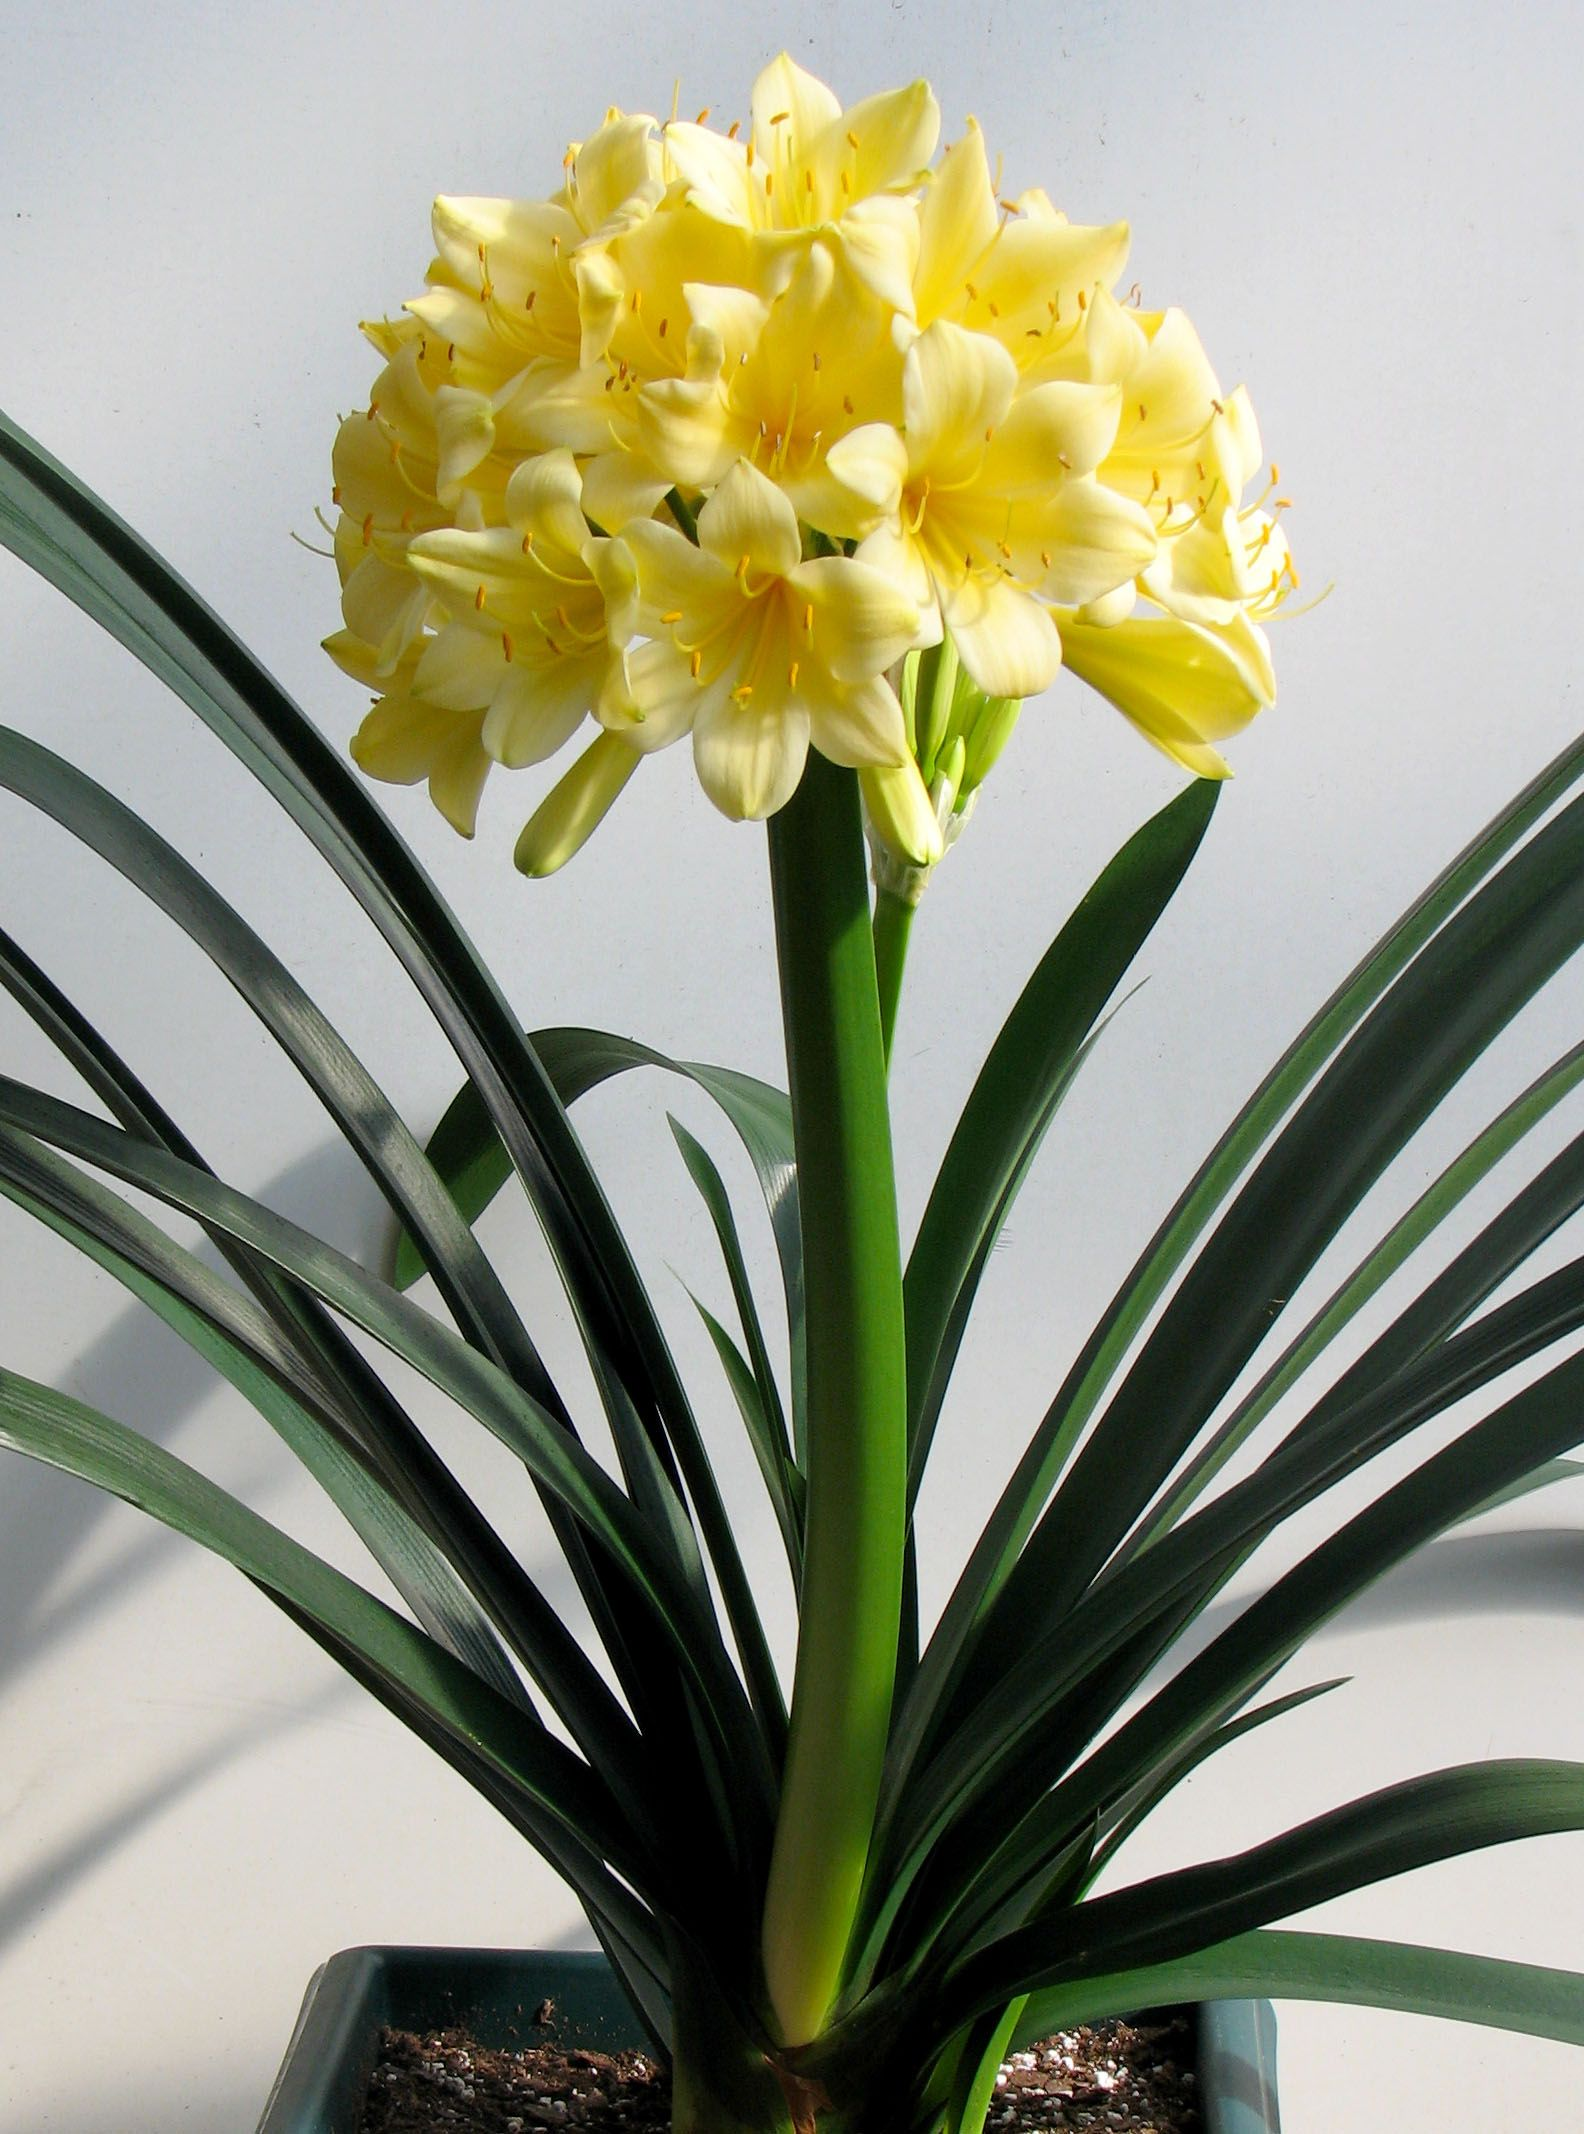 Clivia miniata Longwood Fireworks Oh Id love to have a yellow